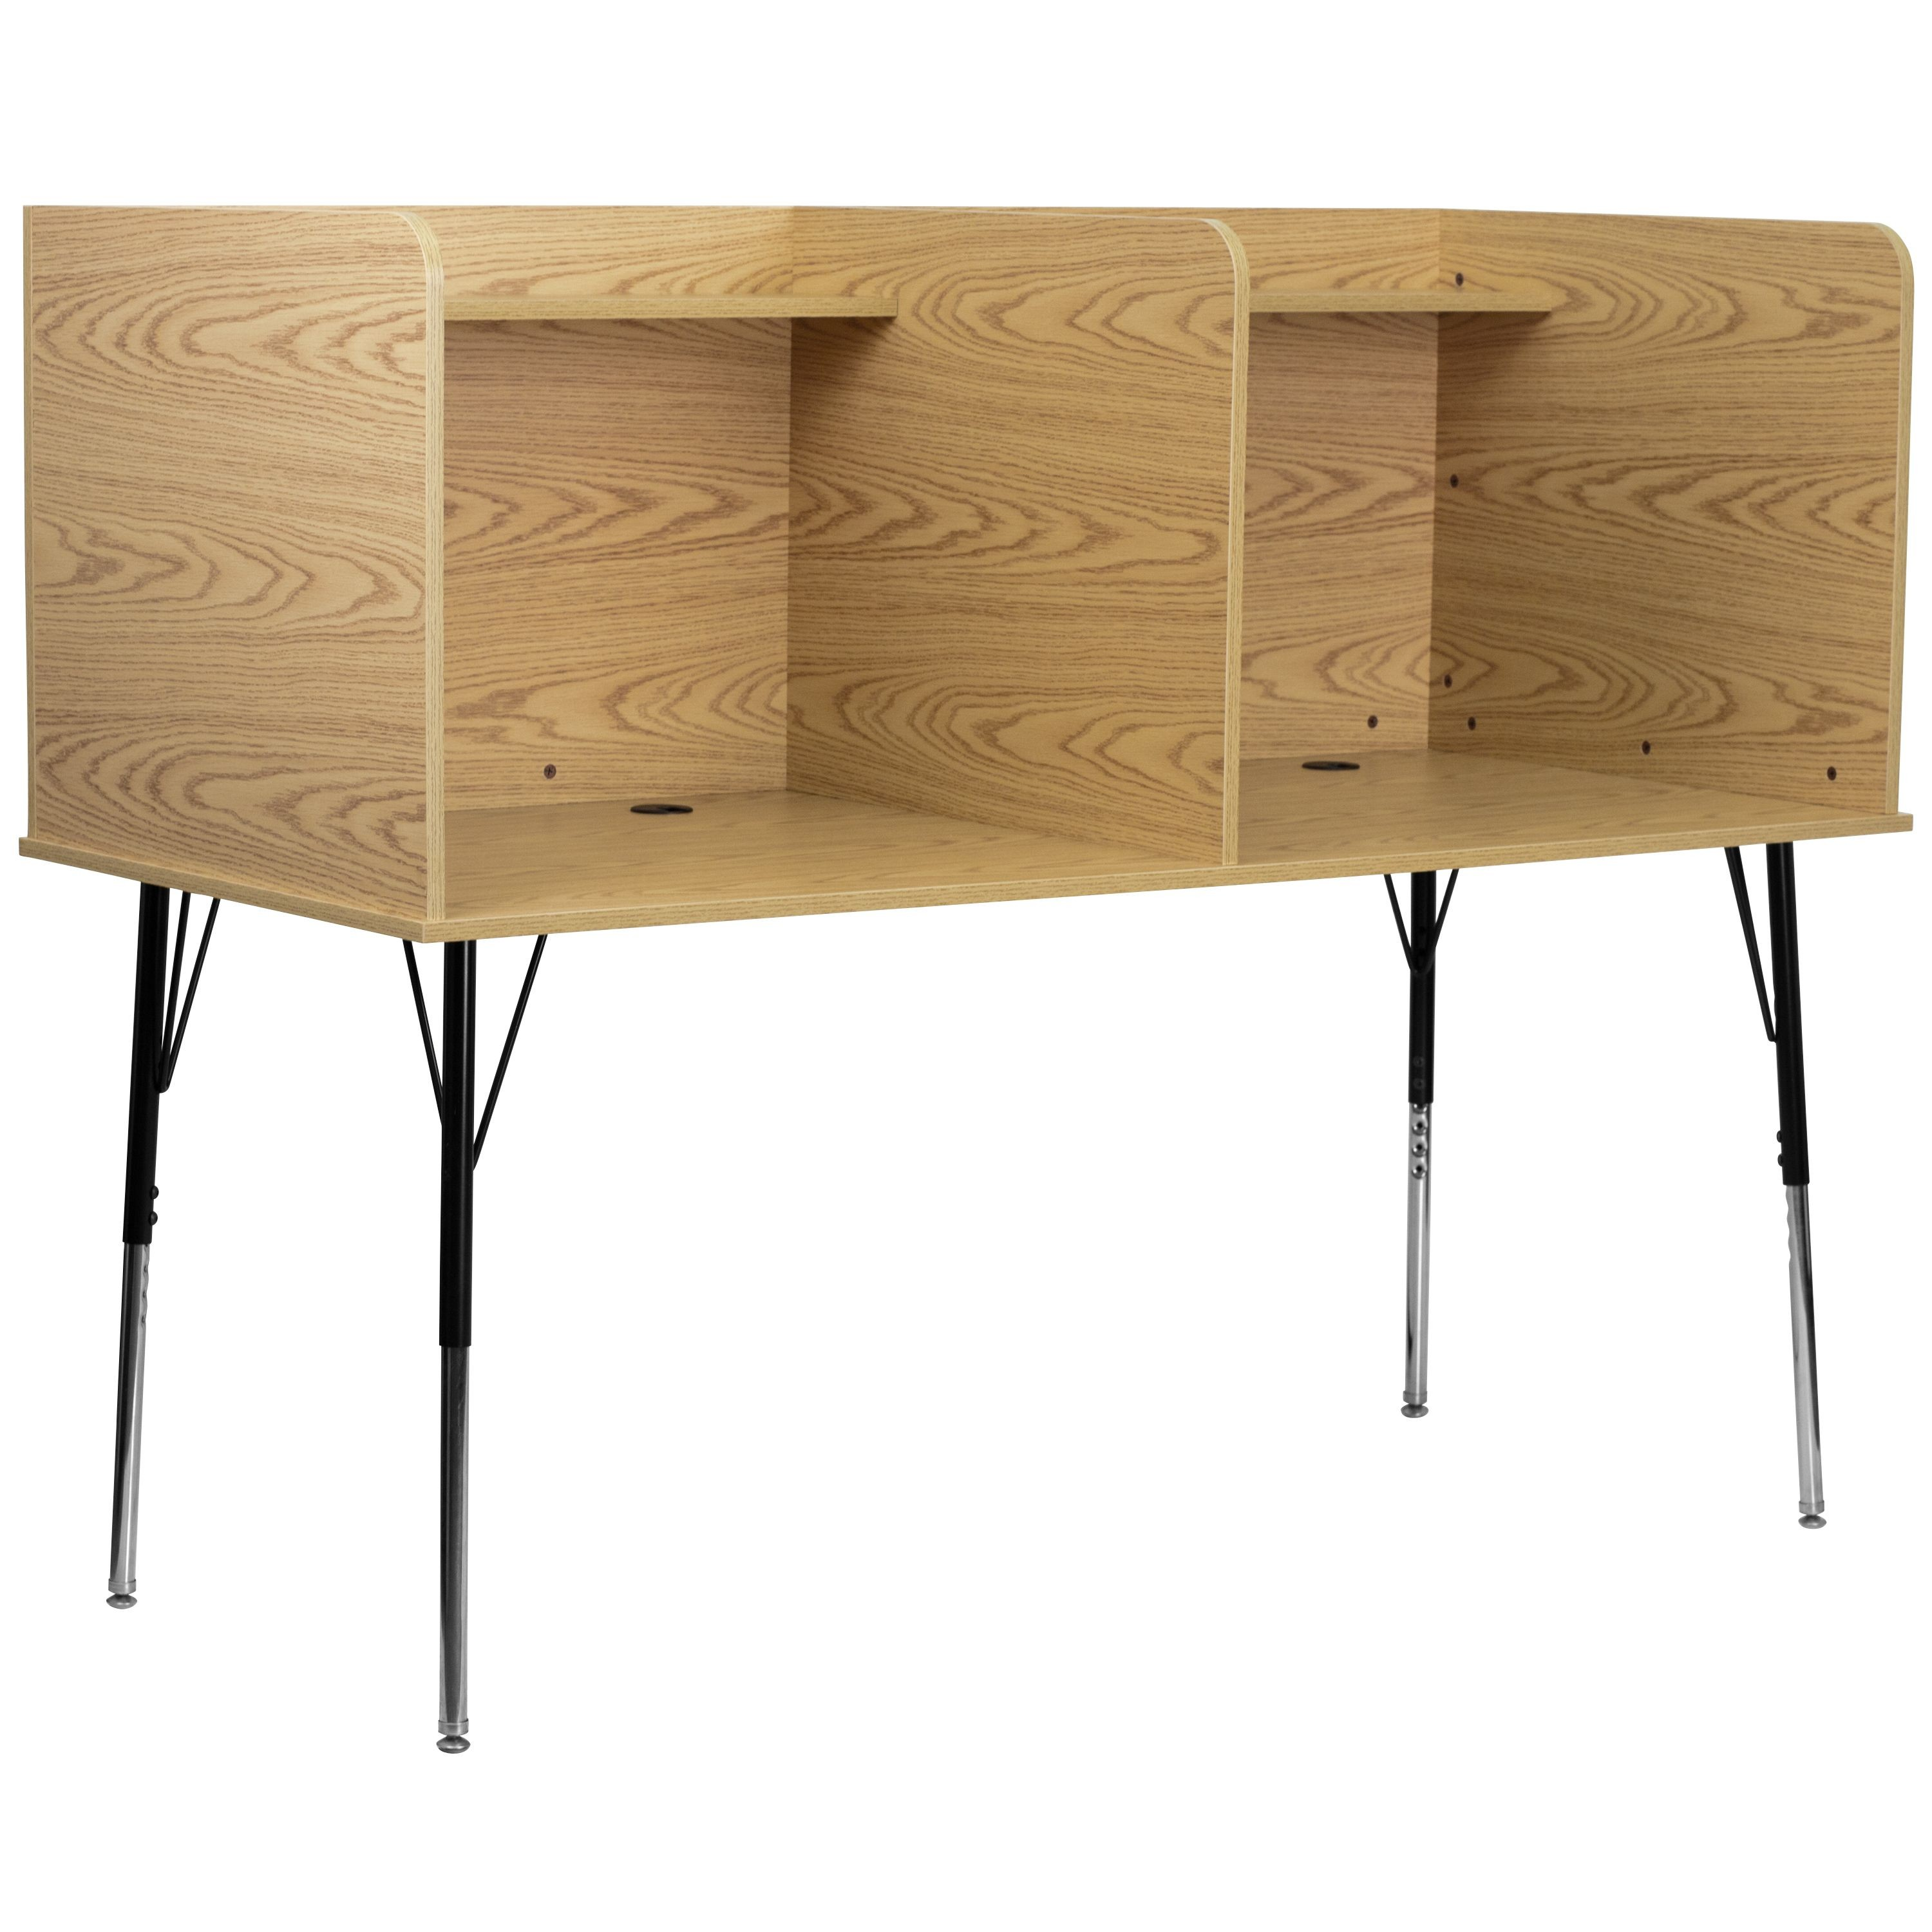 Flash Furniture MT-M6222-OAK-DBL-GG Double Wide Study Carrel with Adjustable Legs and Top Shelf/Oak Finish